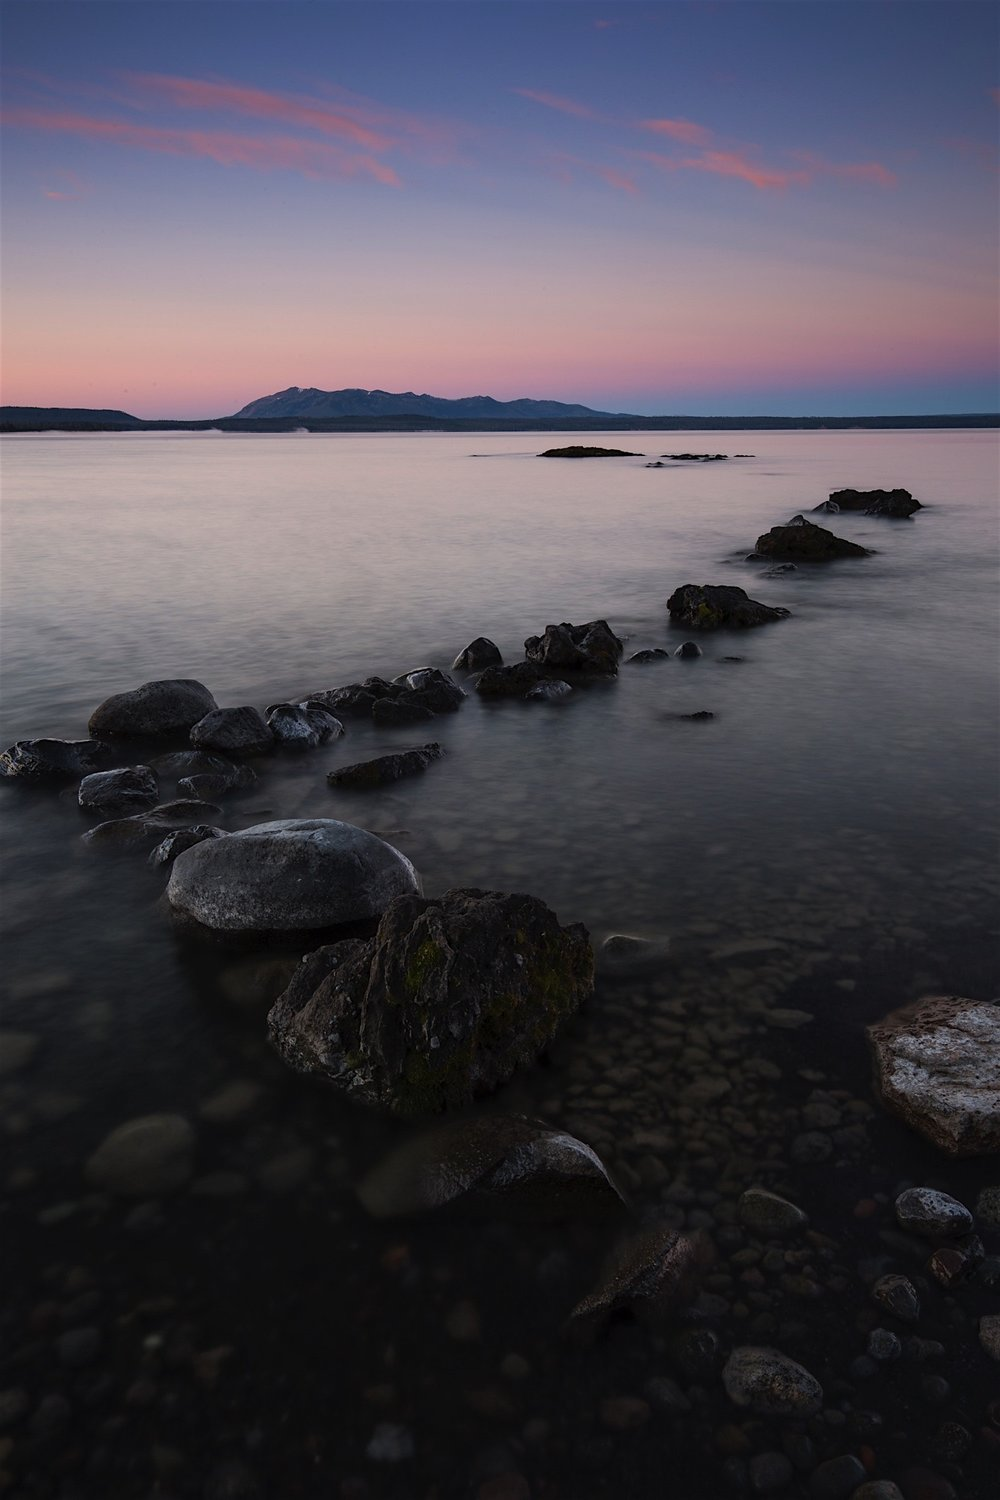 Yellowstone Lake at Dawn from Pumice Point